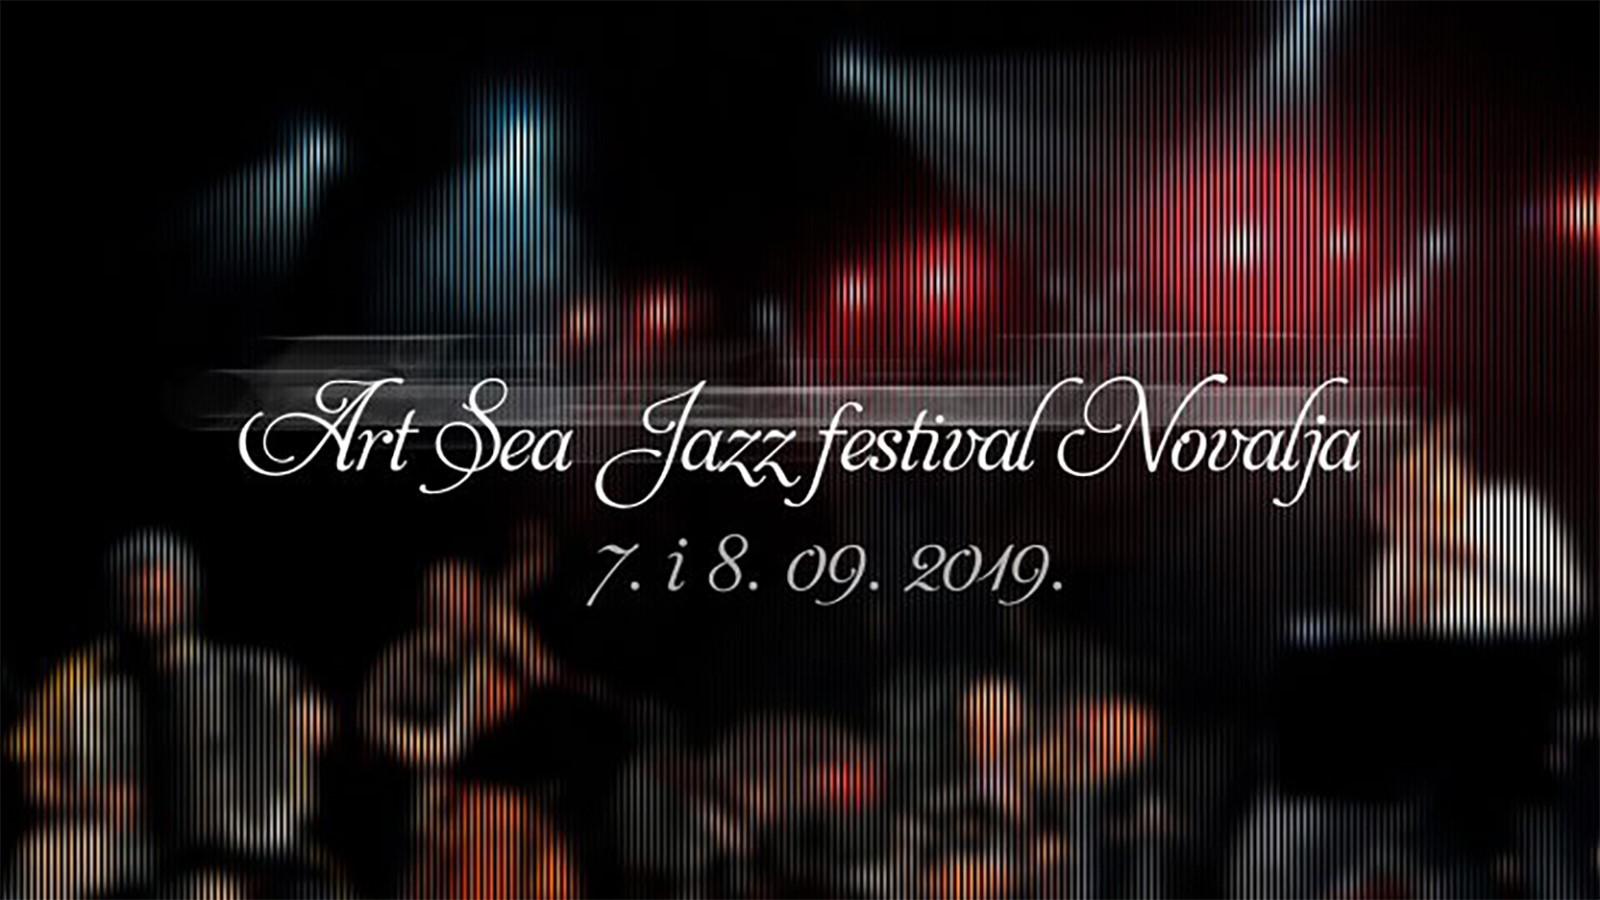 Photo of ART SEA JAZZ FESTIVAL Pružite si užitak slušanja jazz glazbe na festivalu u Novalji!